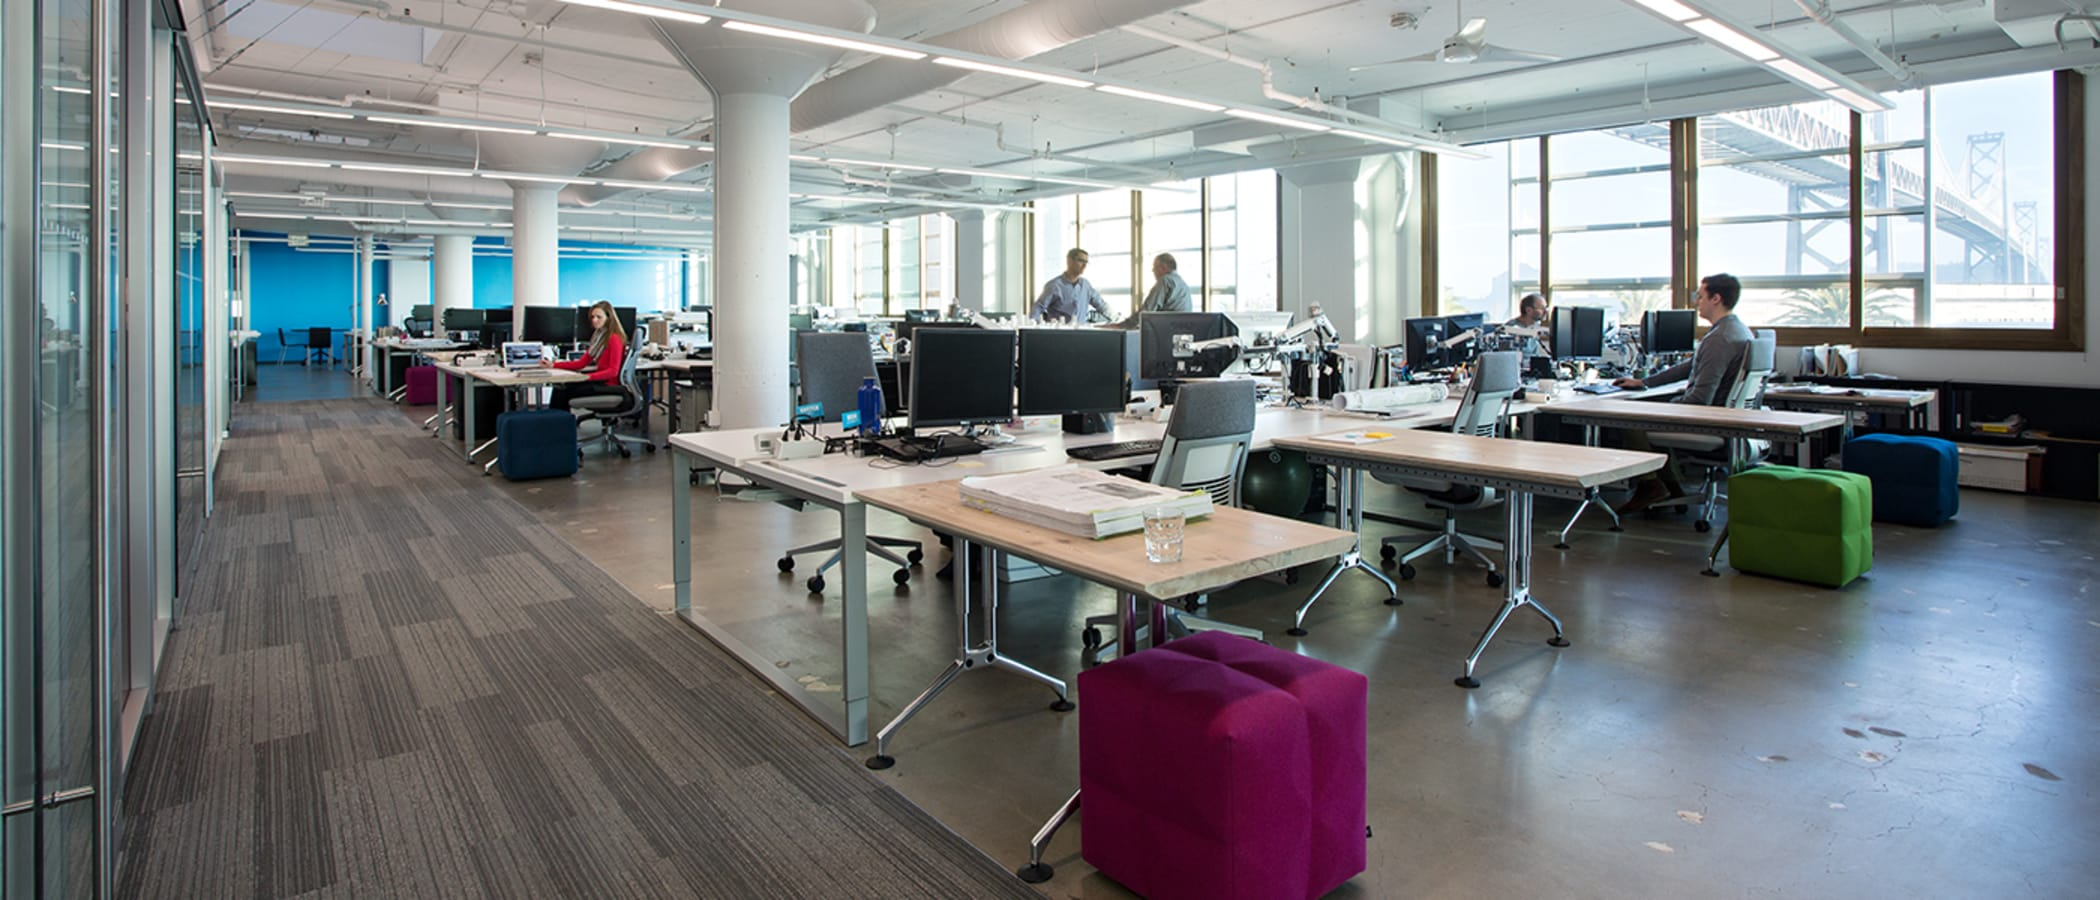 Beyond the Open Office